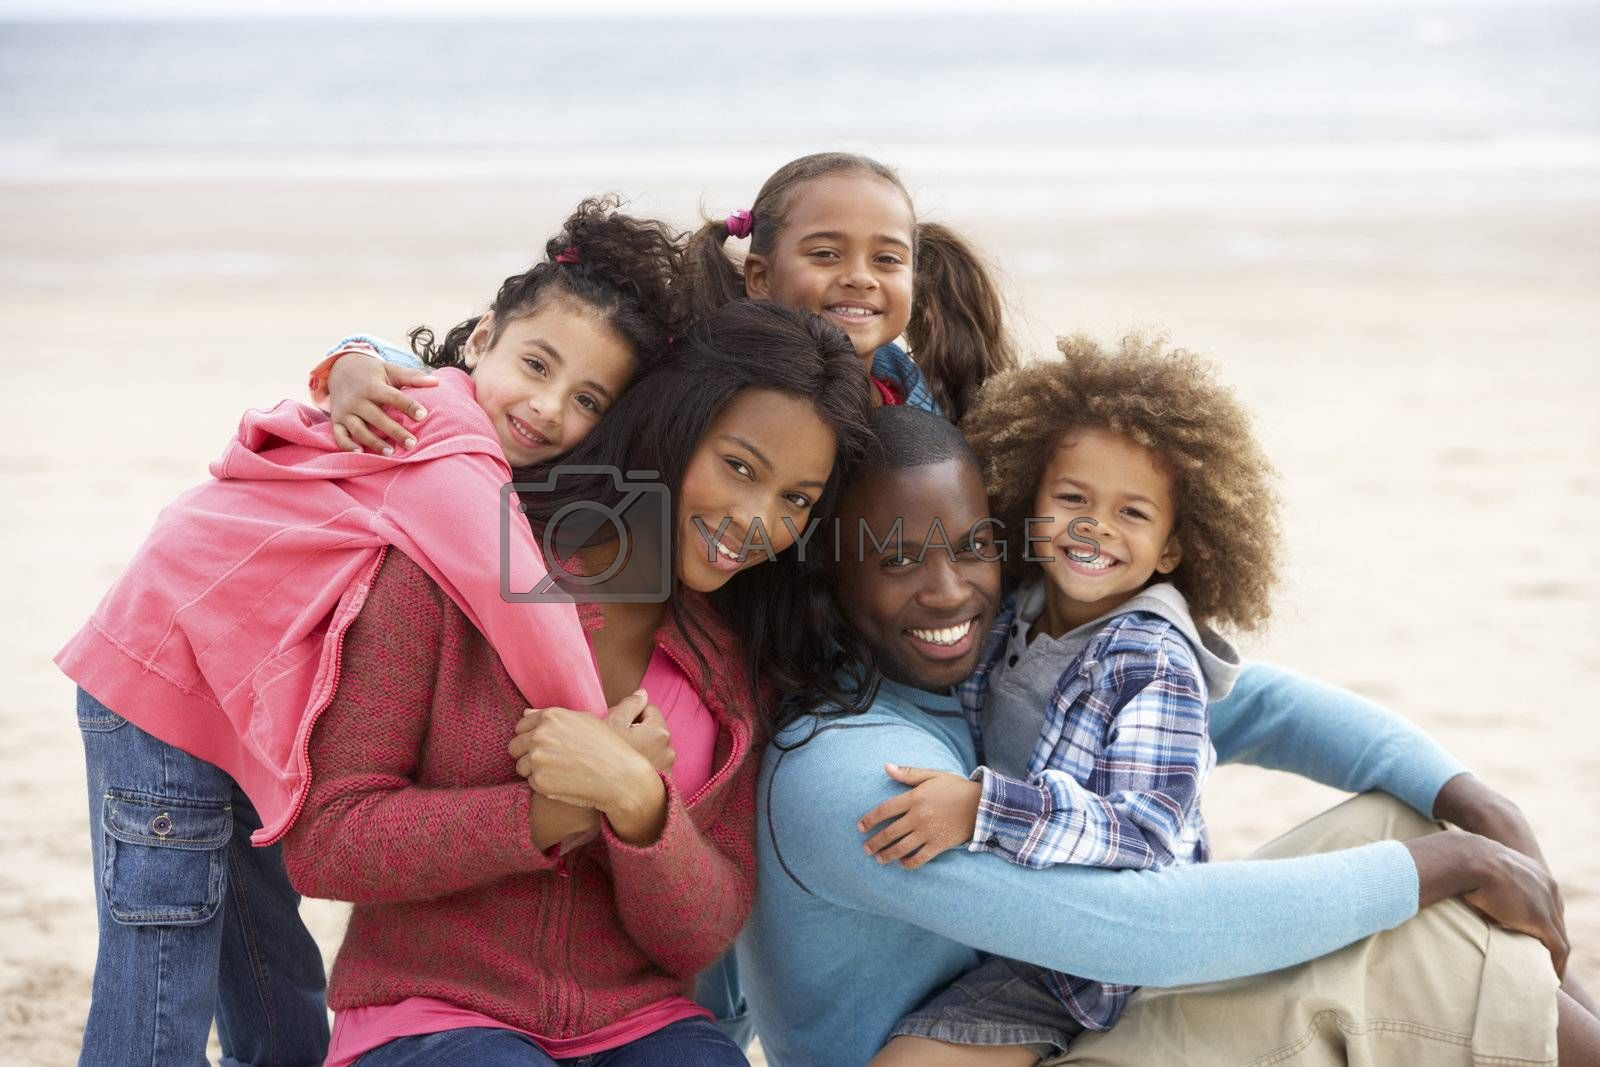 Royalty free image of Young mixed race family embracing on beach by omg_images